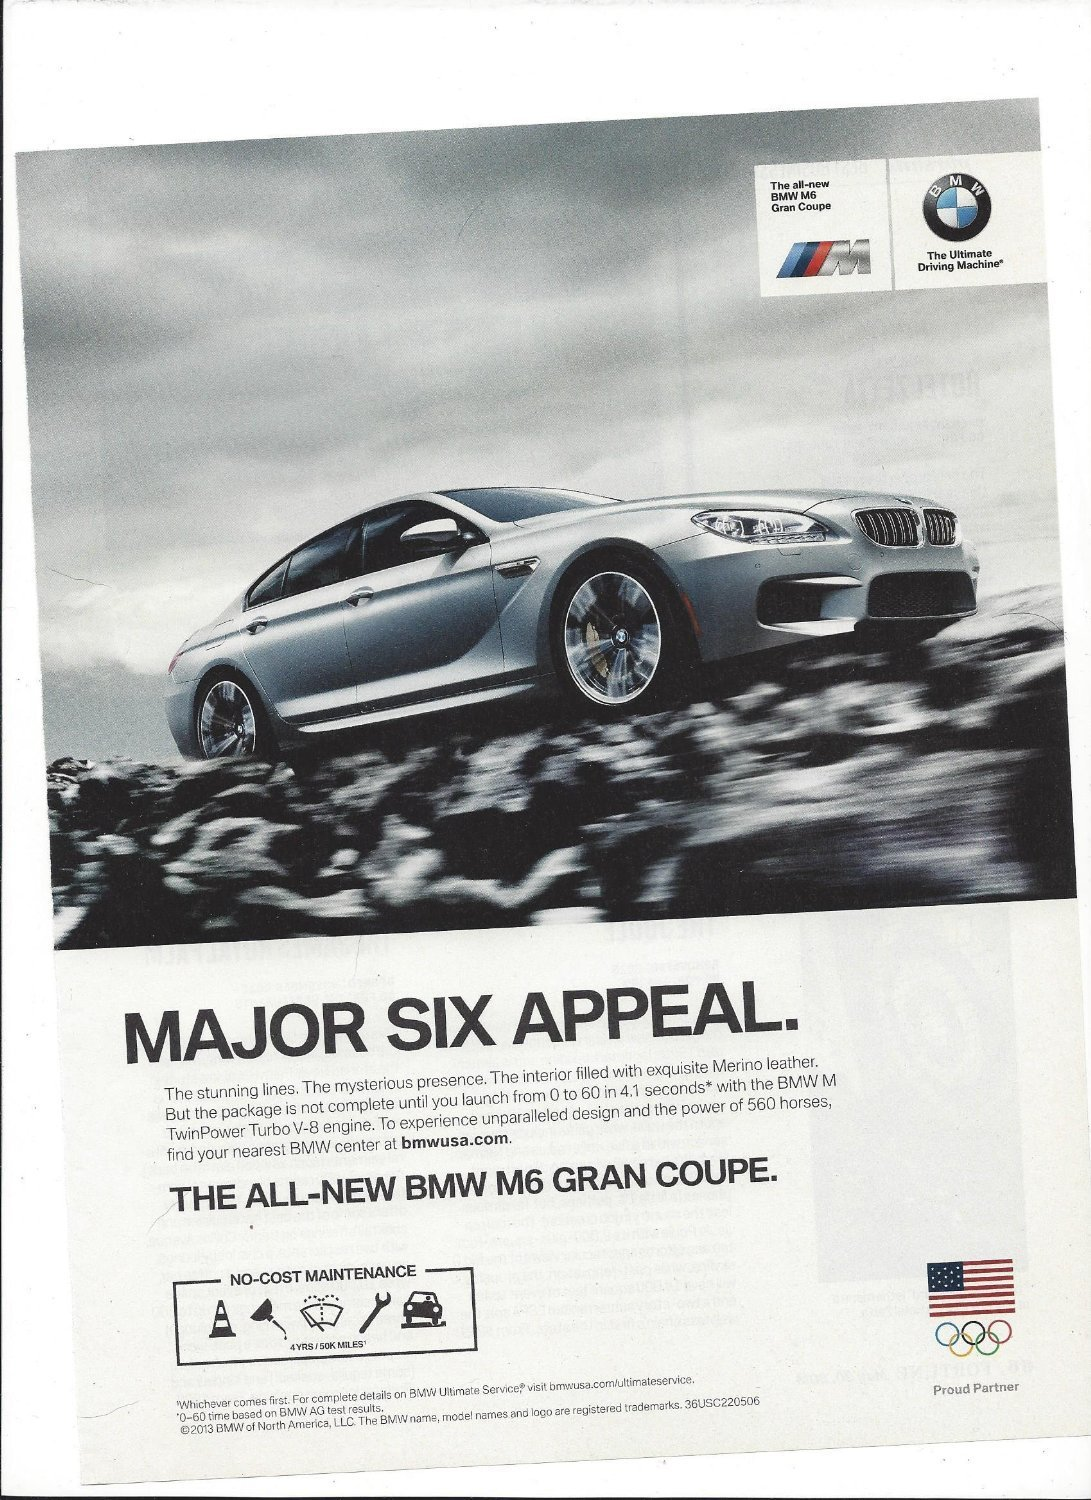 Amazon.com: MAGAZINE ADVERTISEMENT For BMW Silver 2013 M6 Gran Coupe Major Six Appeal: Entertainment Collectibles